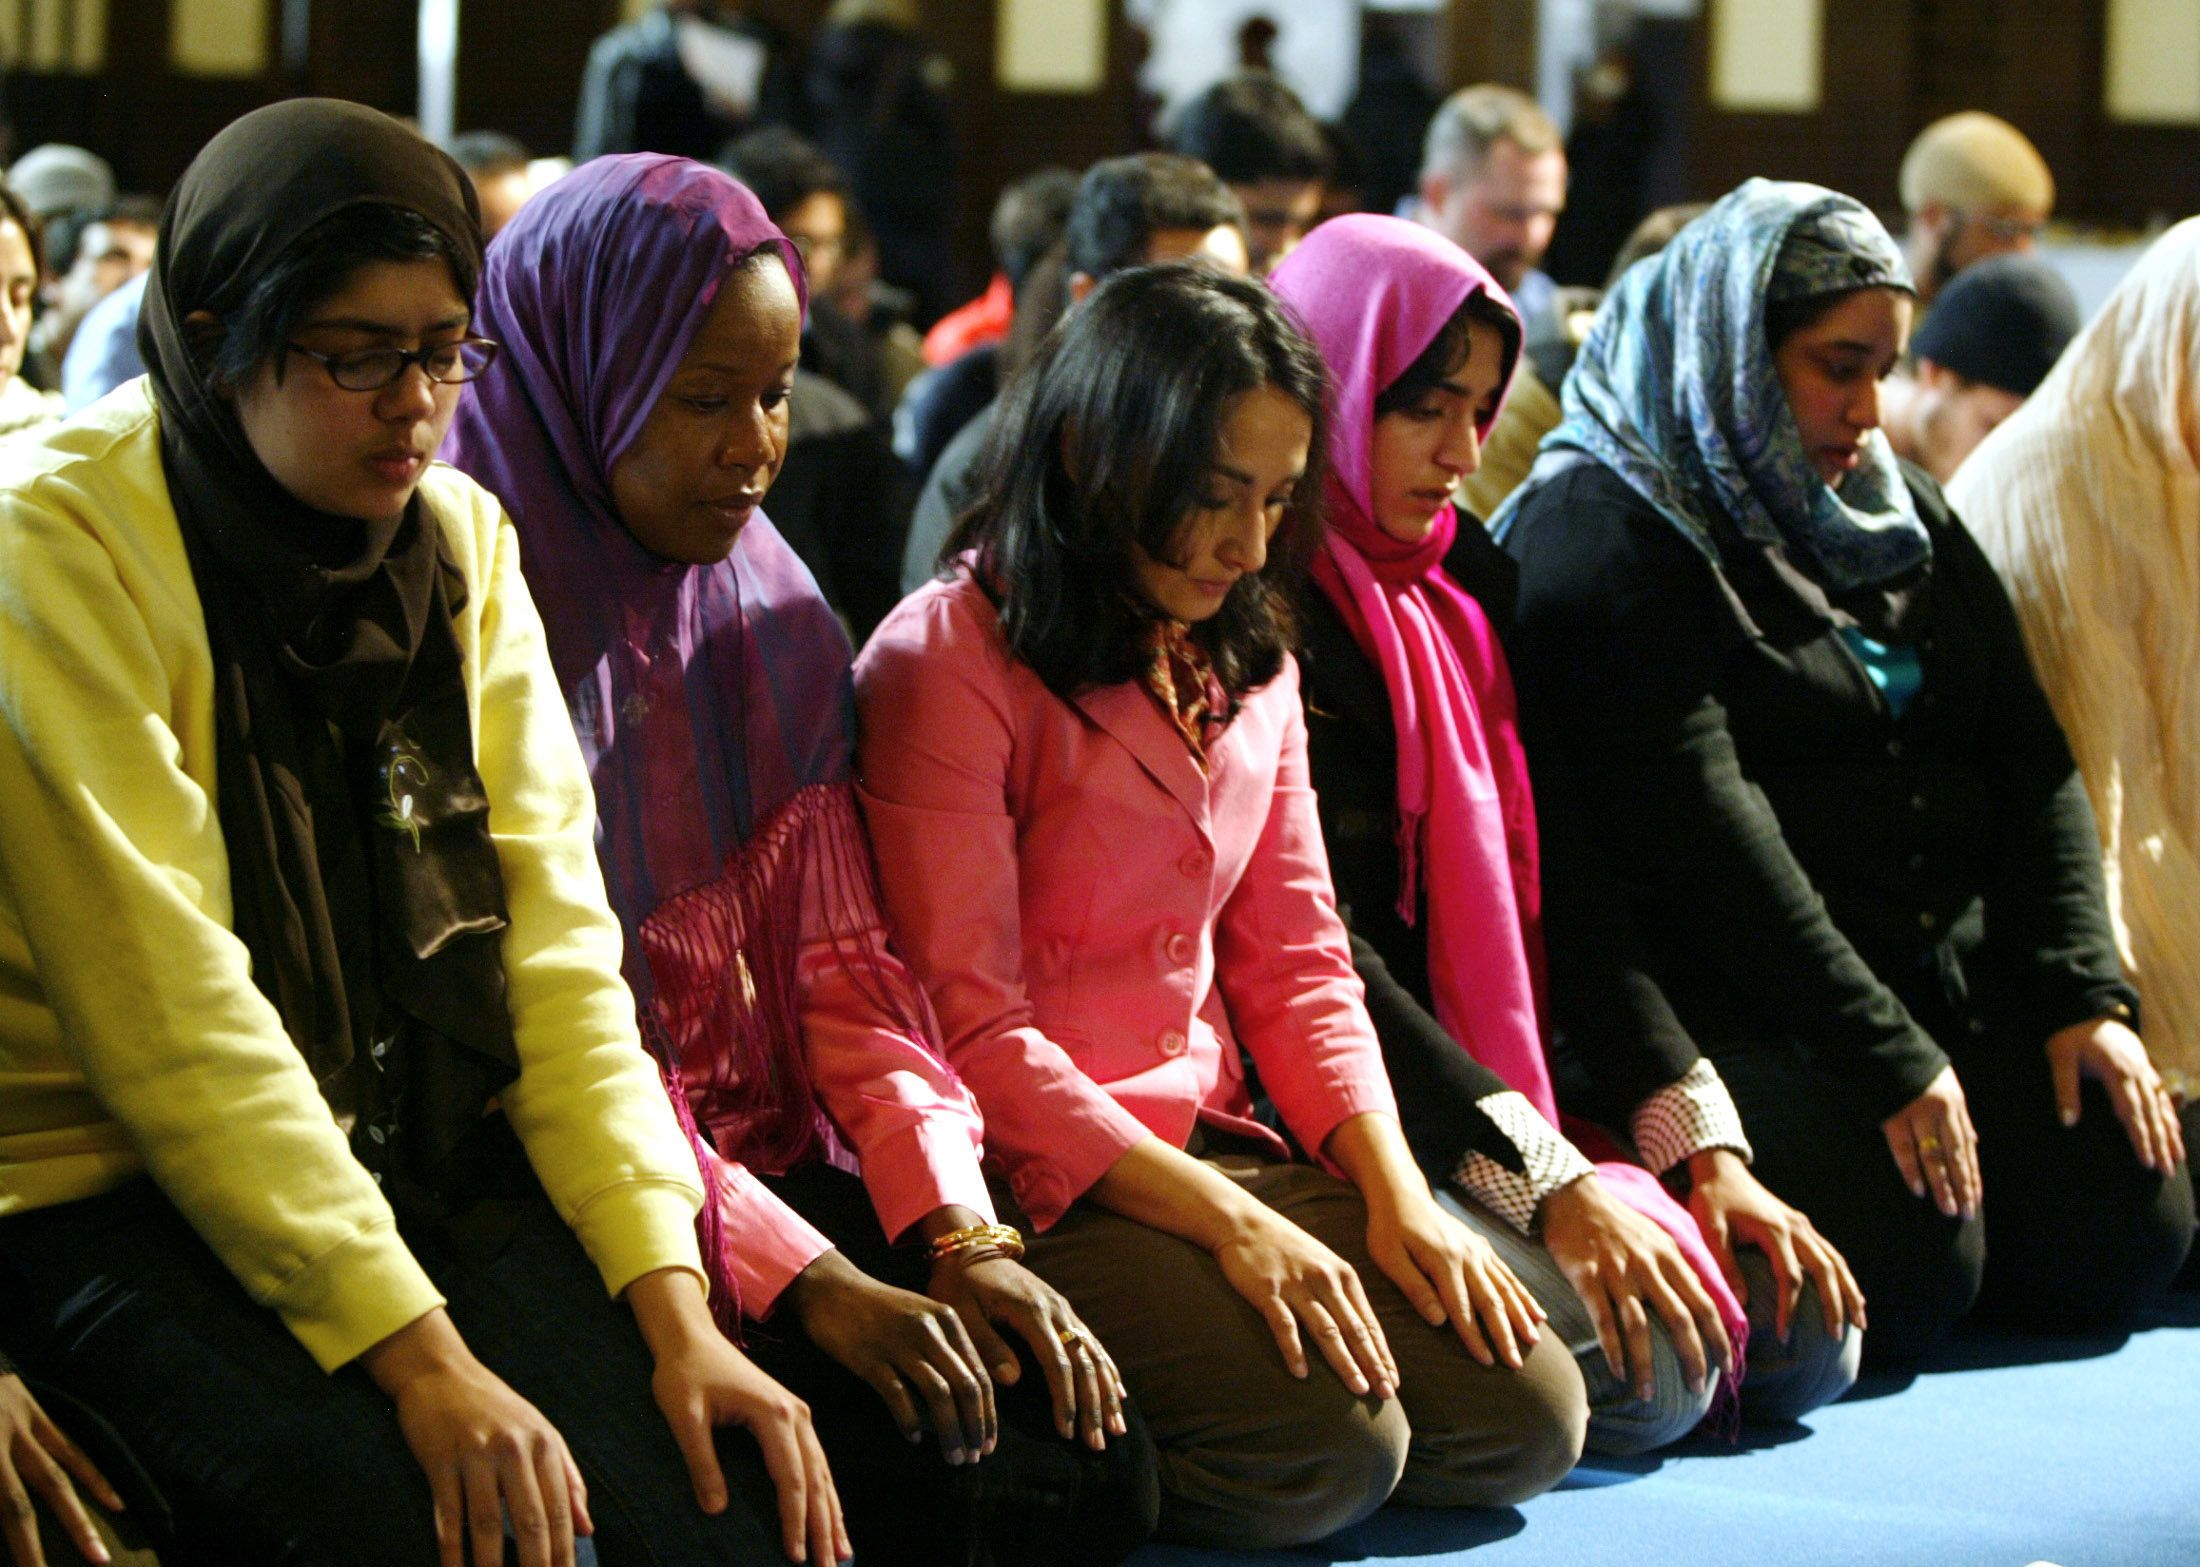 A group of women pray at the end of a public mixed-gender Muslim prayer service that was held in New York City, March 18, 200